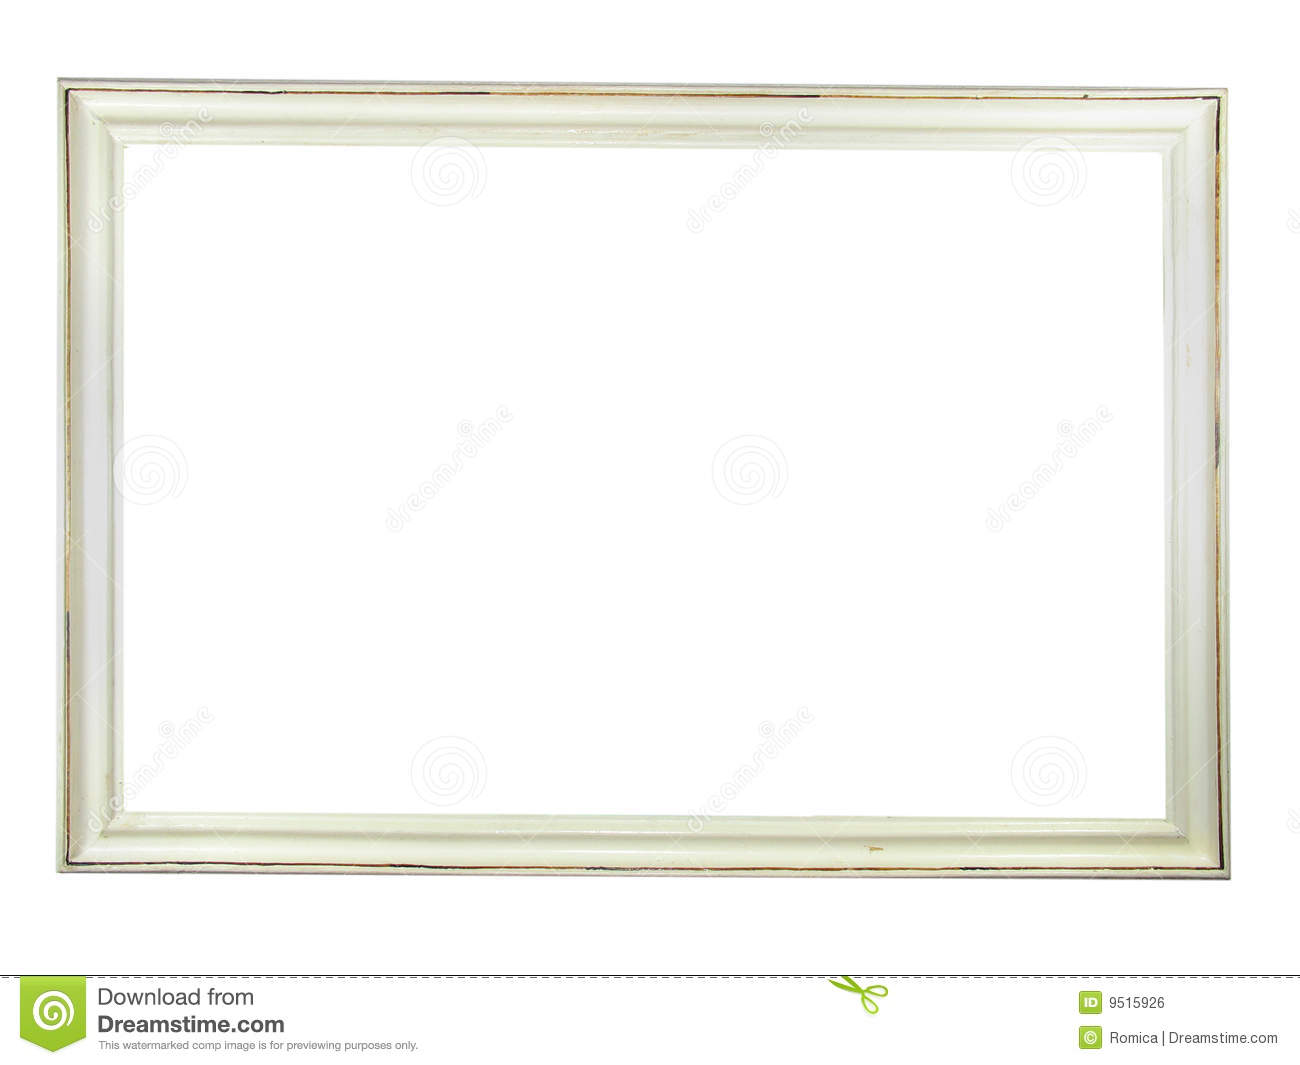 22 By 28 Frame White: Old Antique White Wooden Picture Frame Stock Illustration